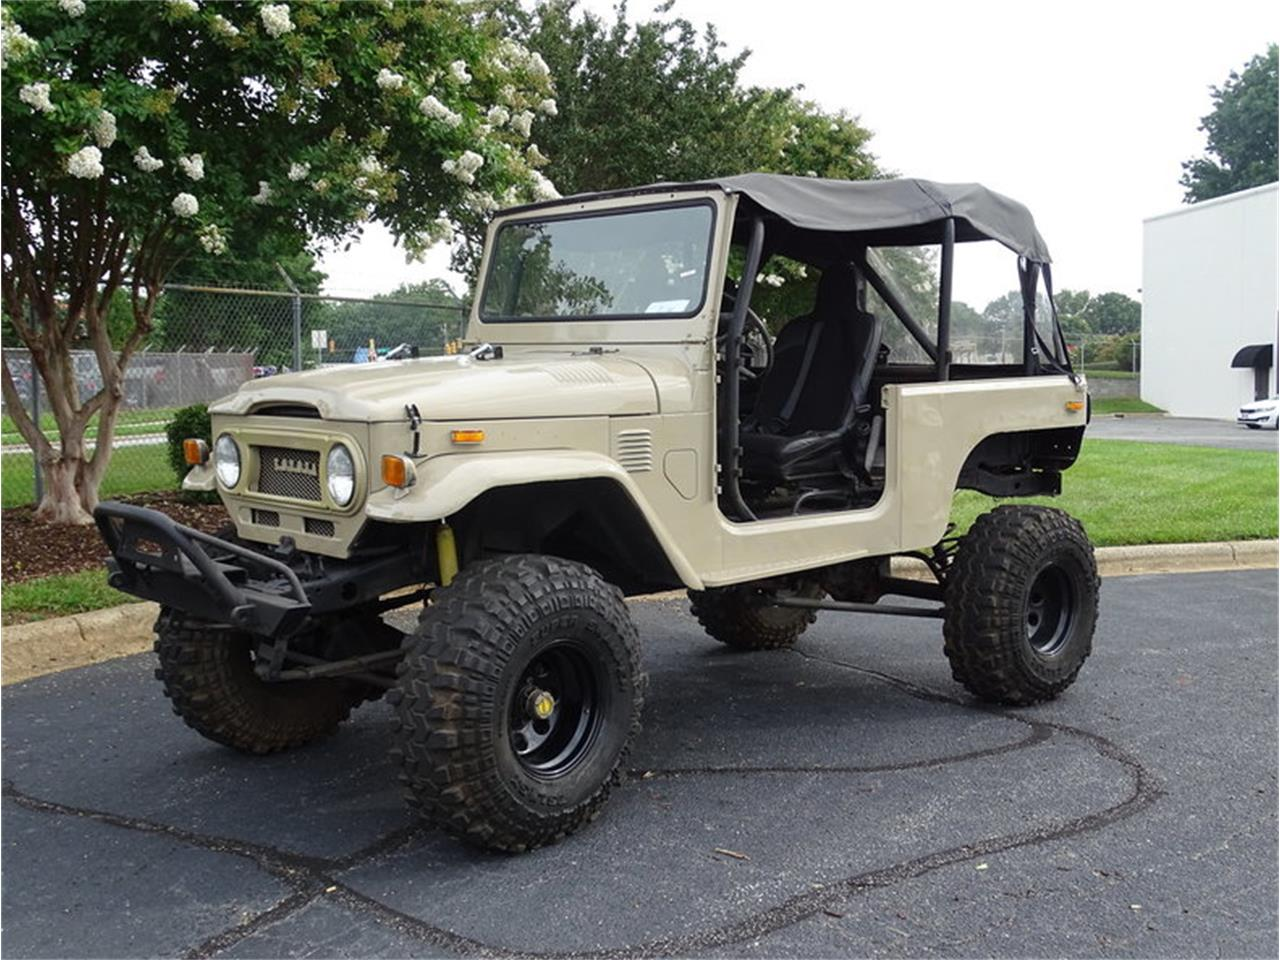 1973 Toyota Land Cruiser Fj For Sale Cc 1106756 Specs Large Picture Of 73 Npz8